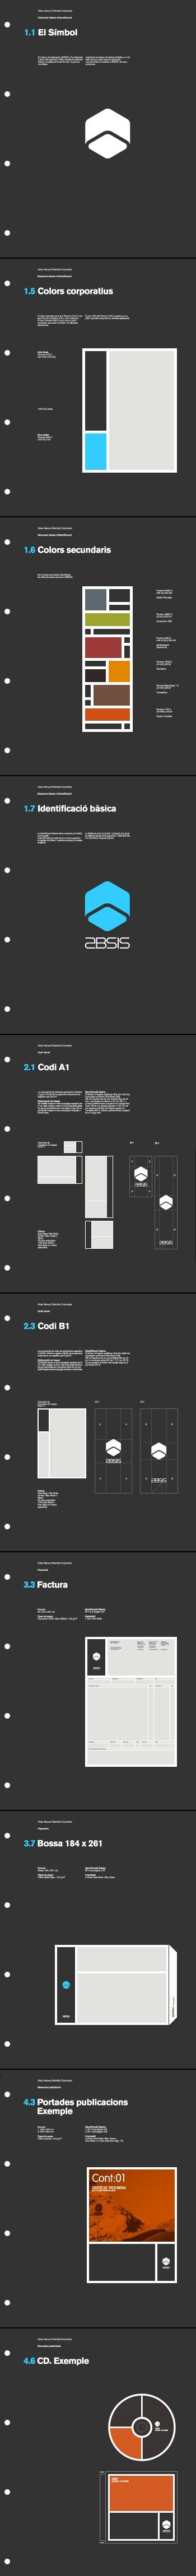 brand guideline /grid/ layout